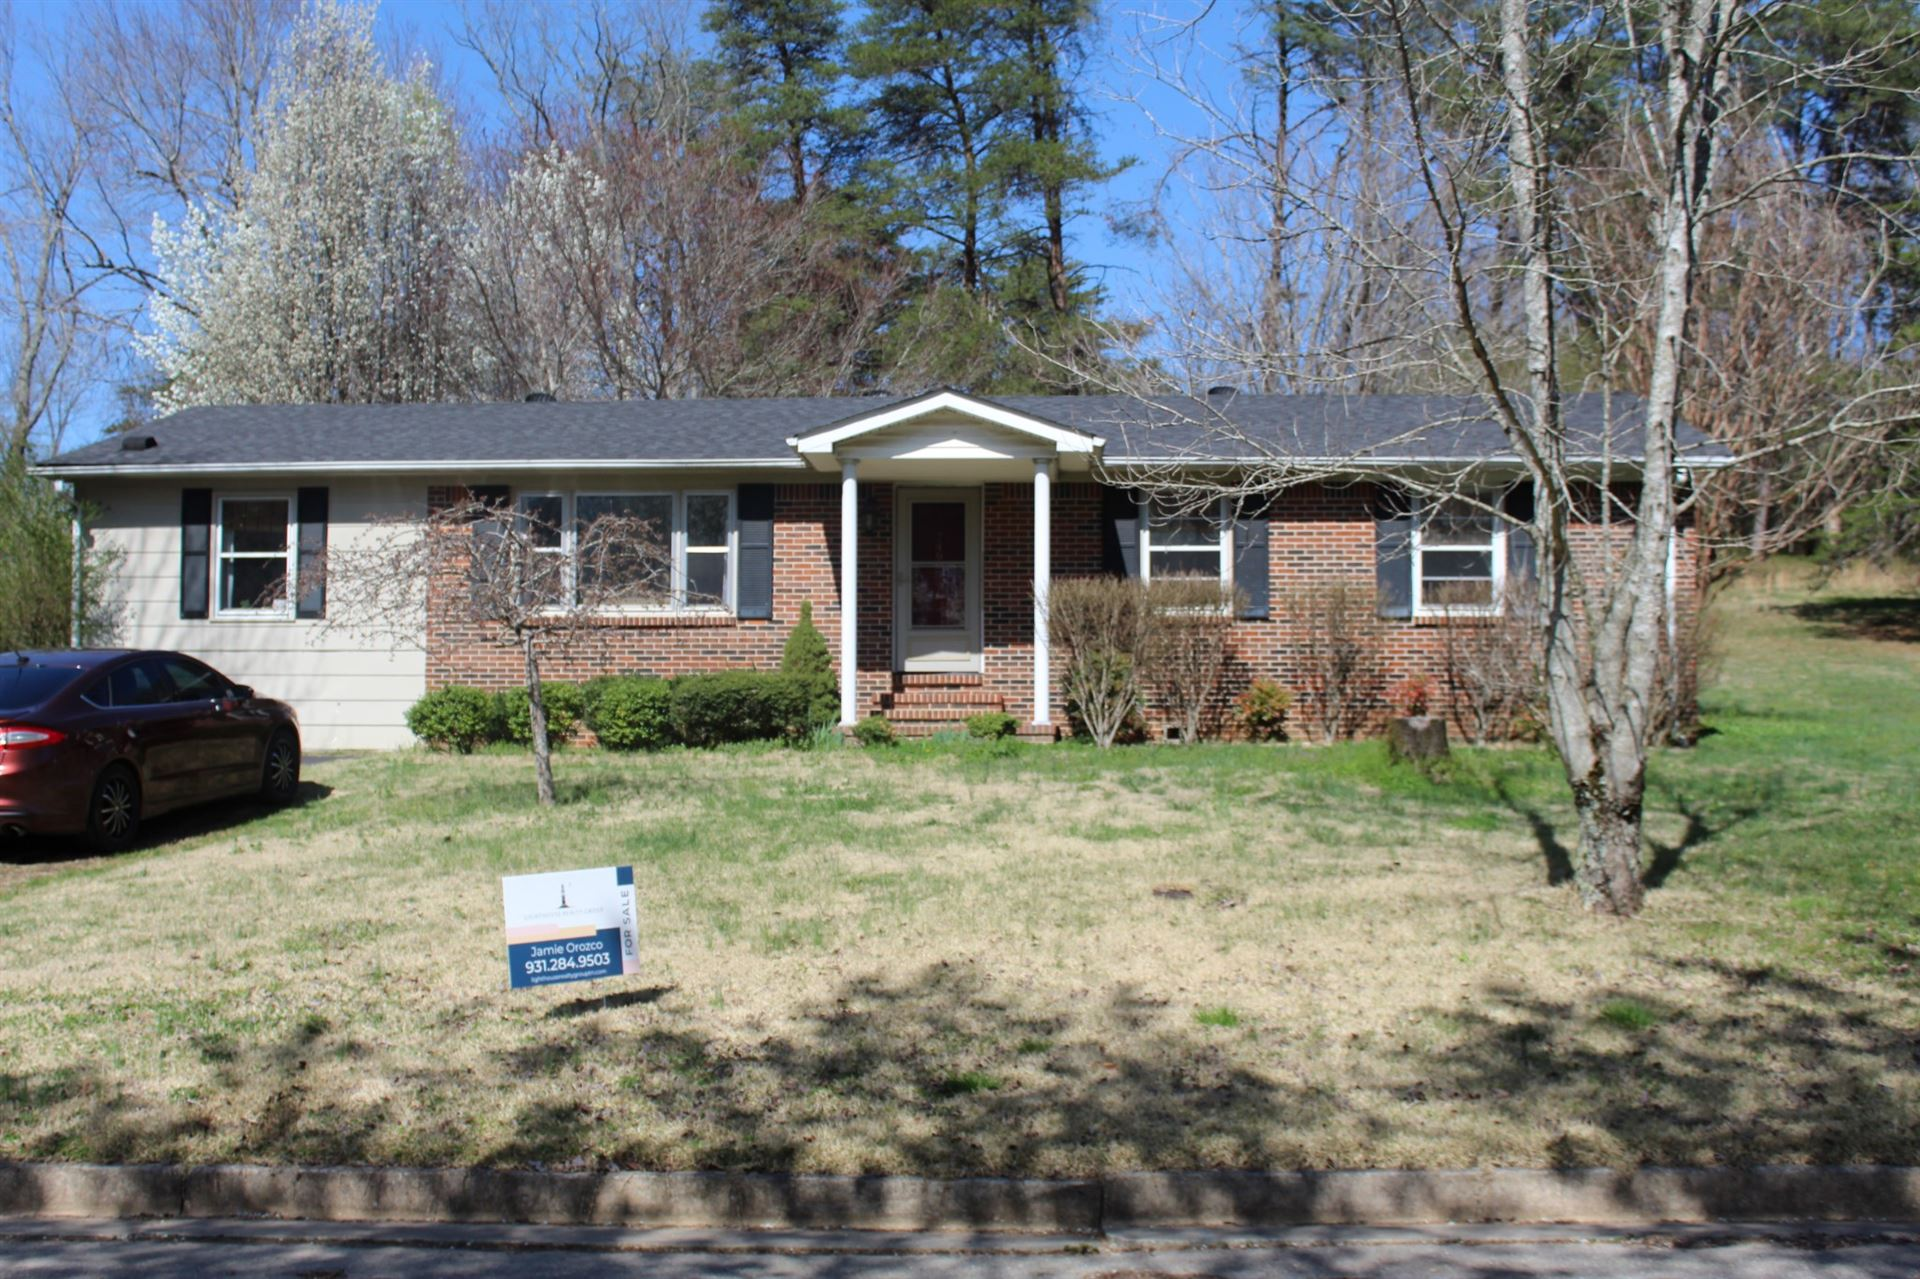 749 Robinson Rd, Cookeville, TN 38501 - MLS#: 2237466